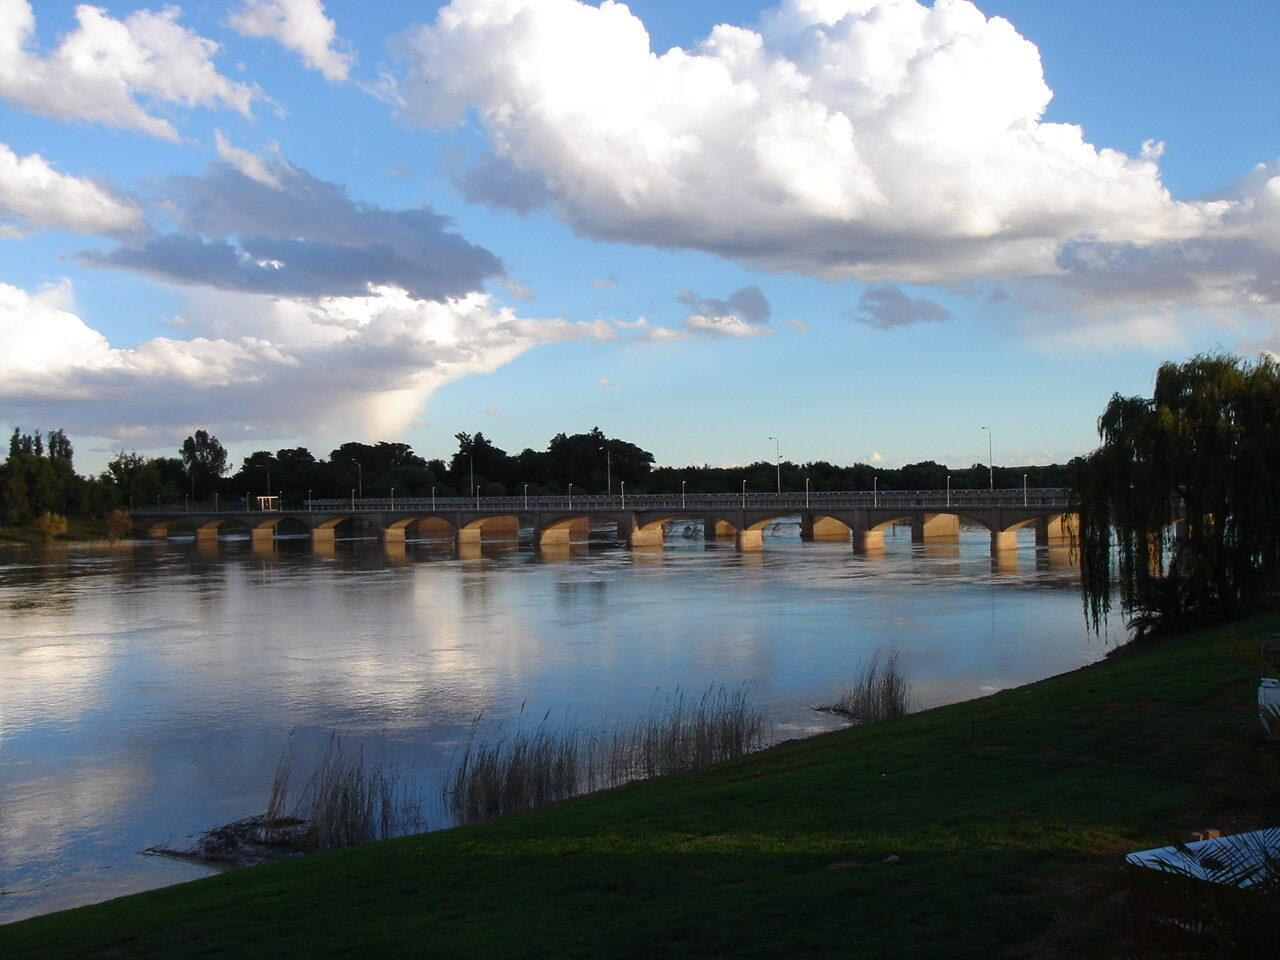 Upington on the banks of the Orange River